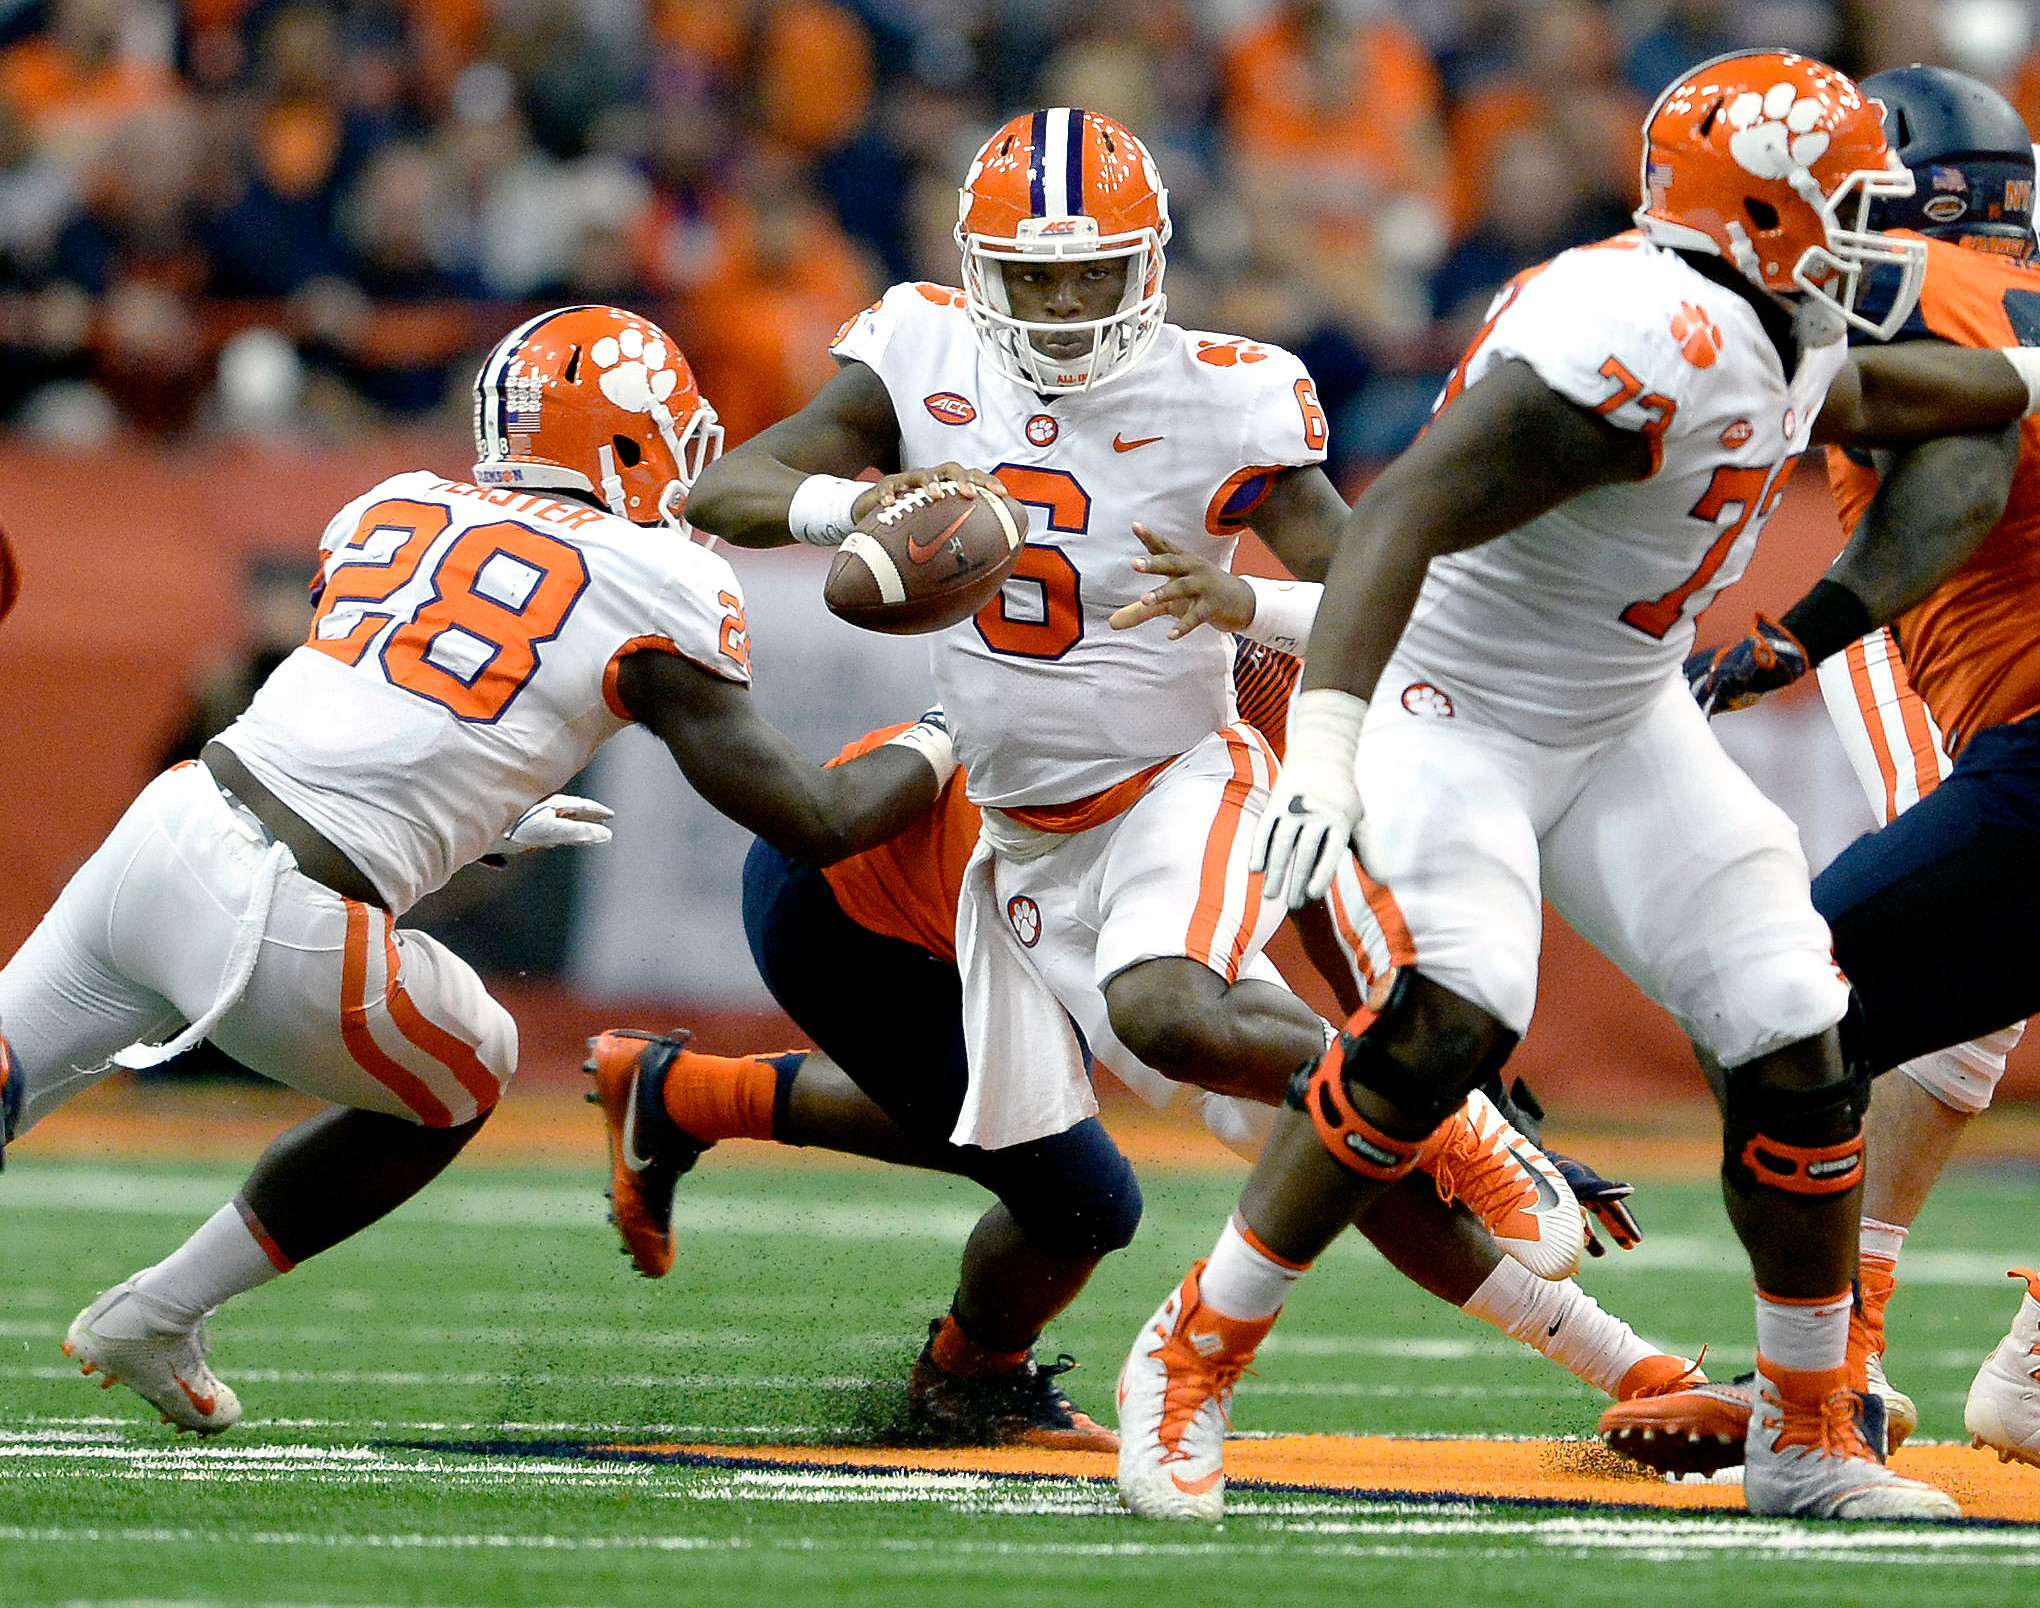 The Associated PressClemson quarterback Zedrick Cooper (6) is chased out of the pocket during the Tigers' 27-24 loss to Syracuse on Oct. 14. He came in after starter Kelly Bryant had to leave due to a concussion. Bryant is expected to start for Clemson on Saturday against Georgia Tech.